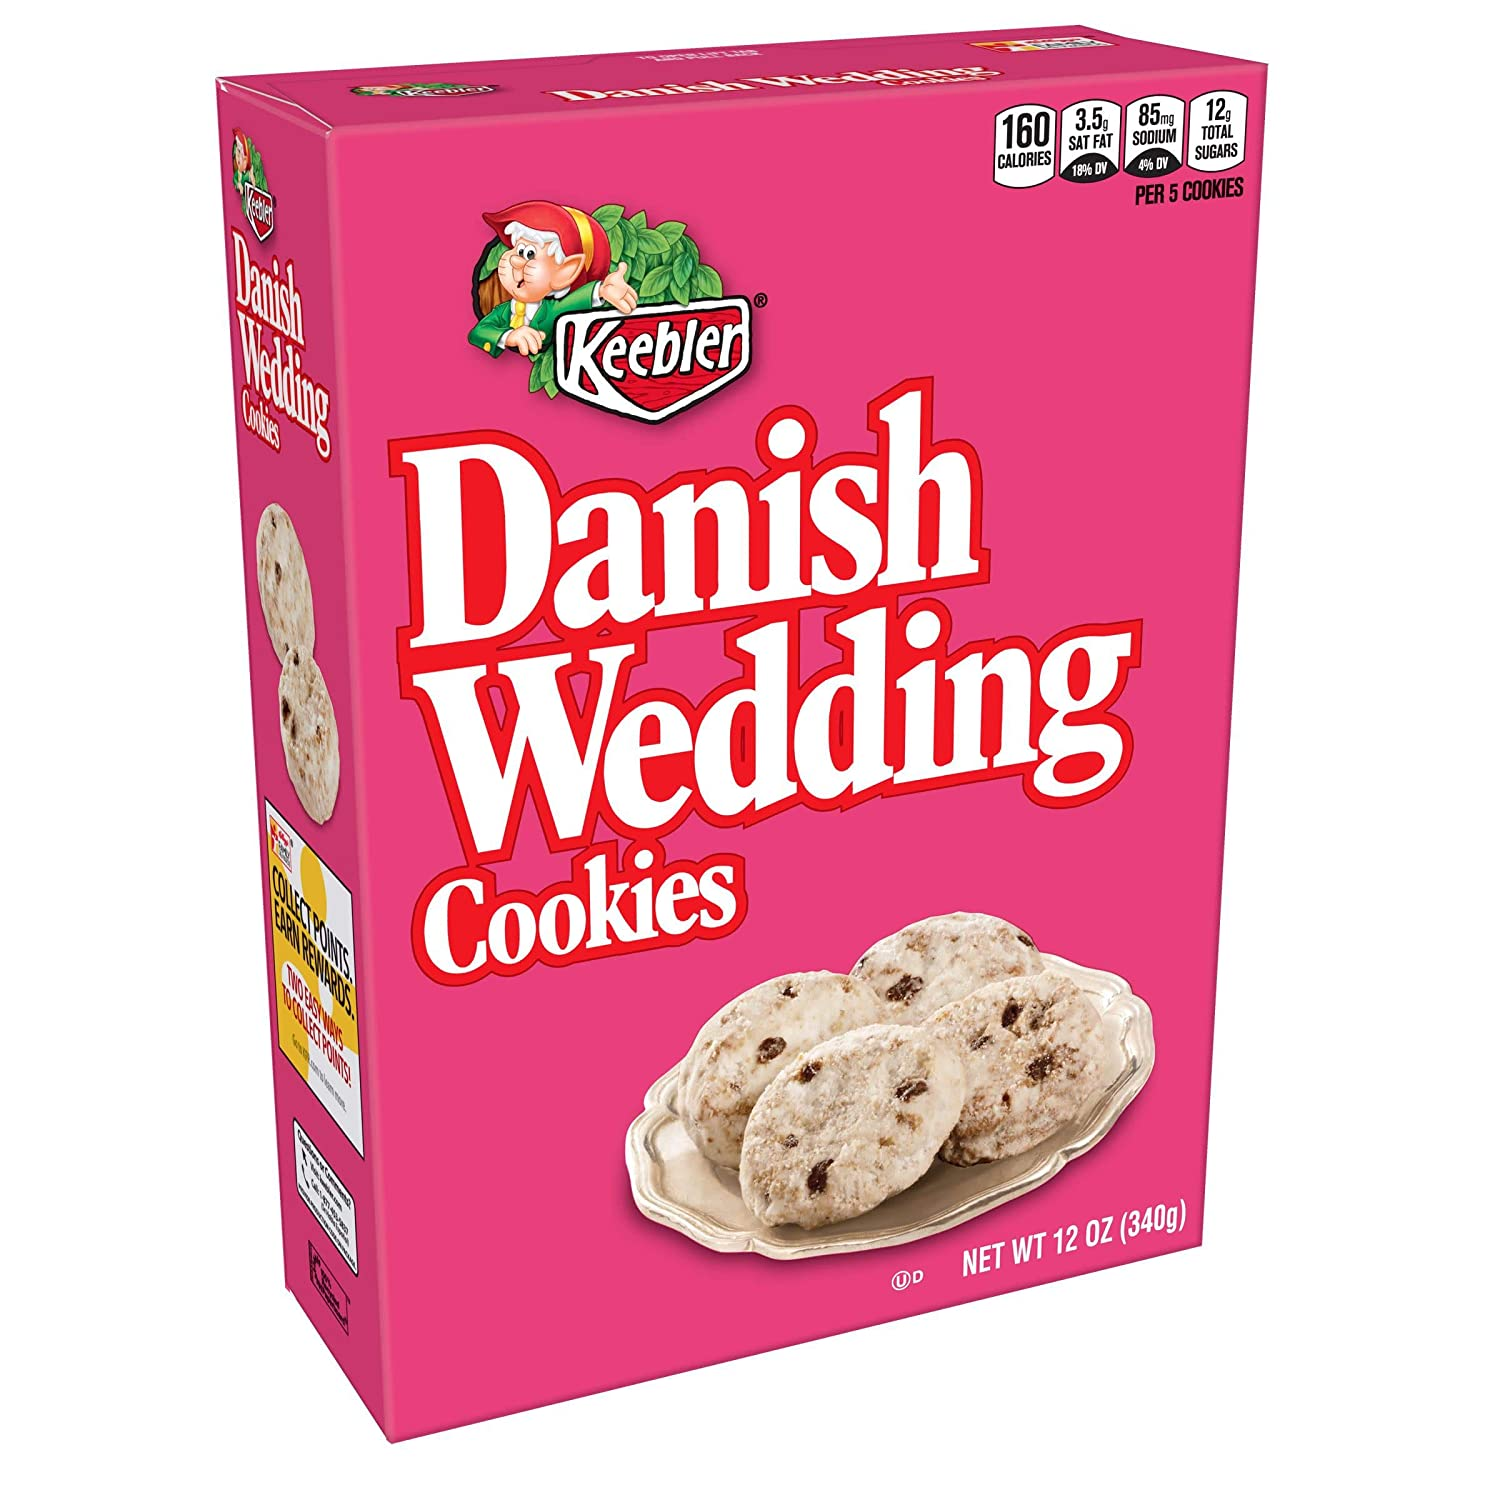 Danish Wedding Cookies.Keebler Cookies Danish Wedding Flavors Of Coconut And Chocolatey Chips 12 Oz Box Pack Of 4